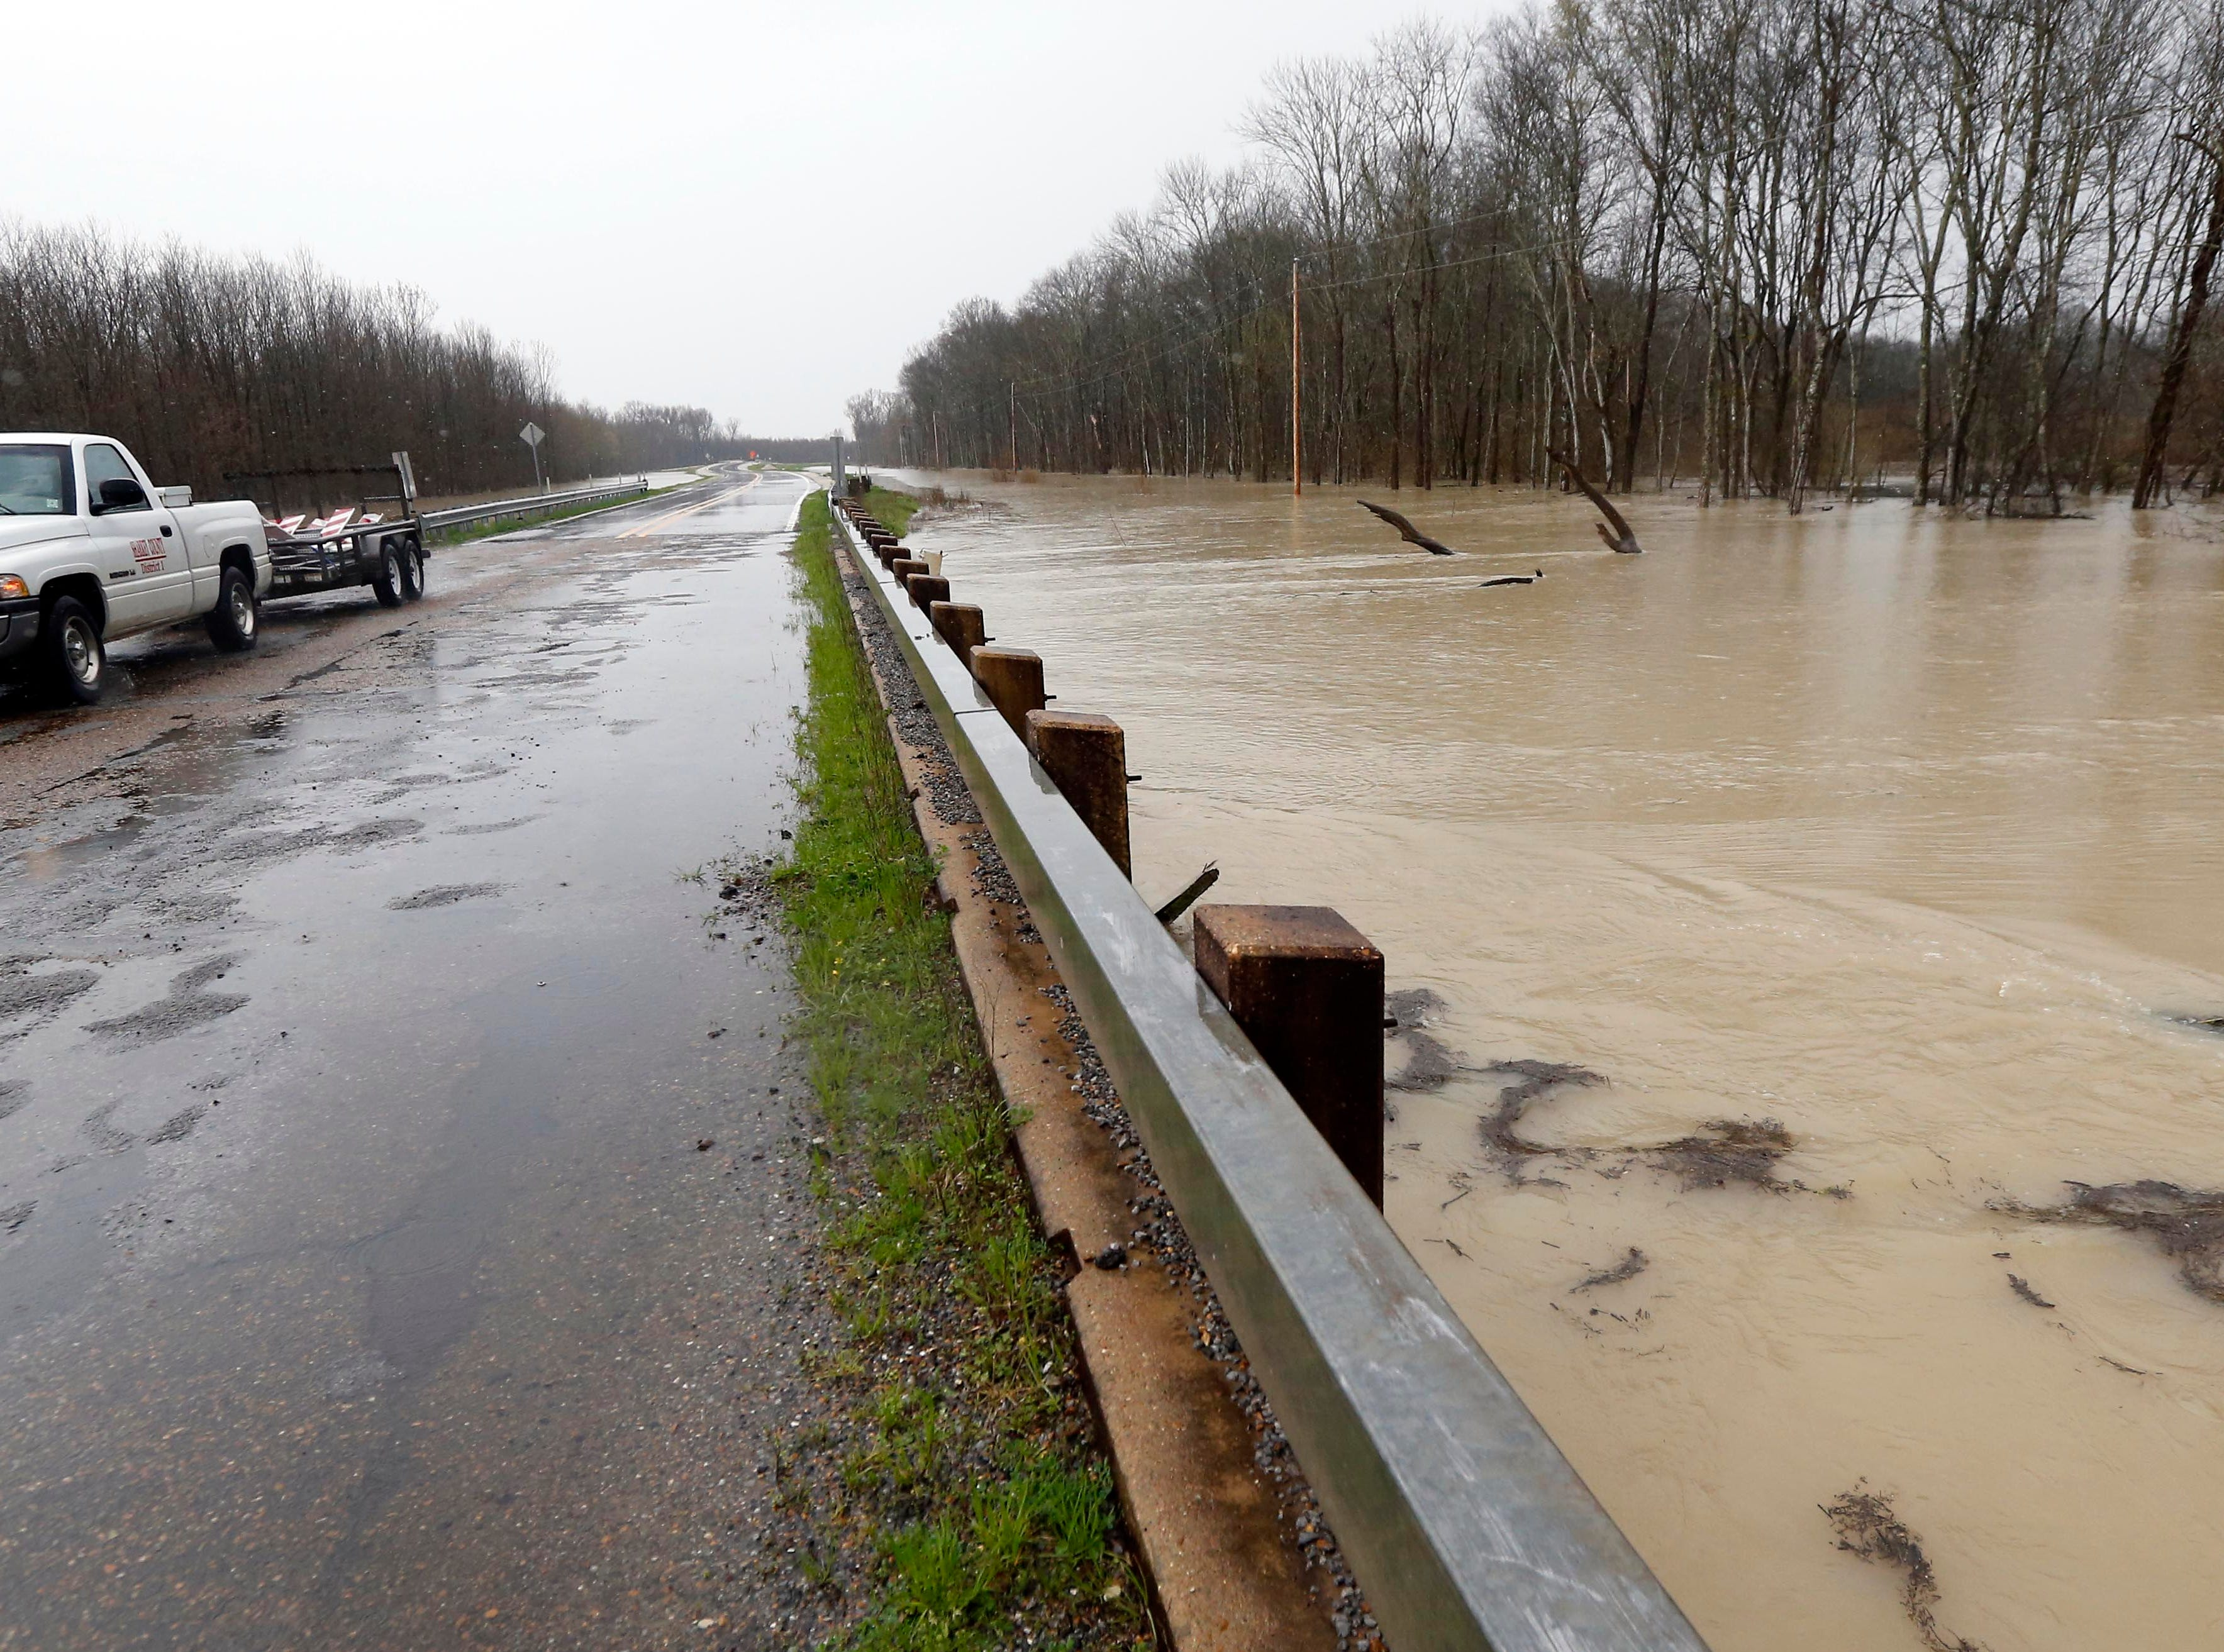 Backflow waters flood Mississippi 16 near Rolling Fork, Miss., Monday, March 11, 2019. This week the Federal Emergency Management Agency (FEMA), the Mississippi Emergency Management Agency (MEMA), along with select local emergency management offices will be conducting joint damage assessments in response to the severe storms and flooding are impacting the state. (AP Photo/Rogelio V. Solis)